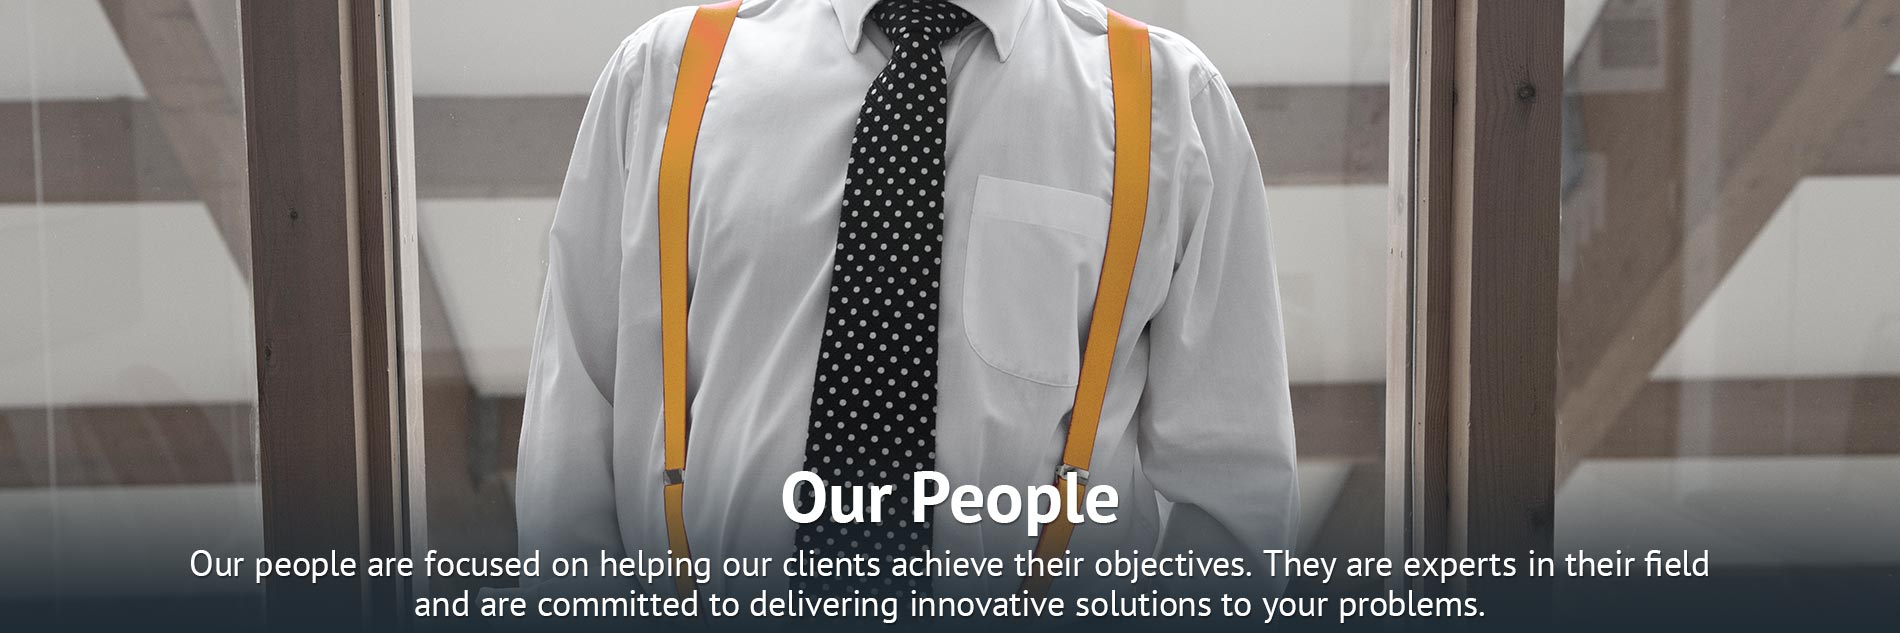 Our people are focused on helping our clients achieve their objectives. They are experts in their field and are committed to delivering innovative solutions to your problems.